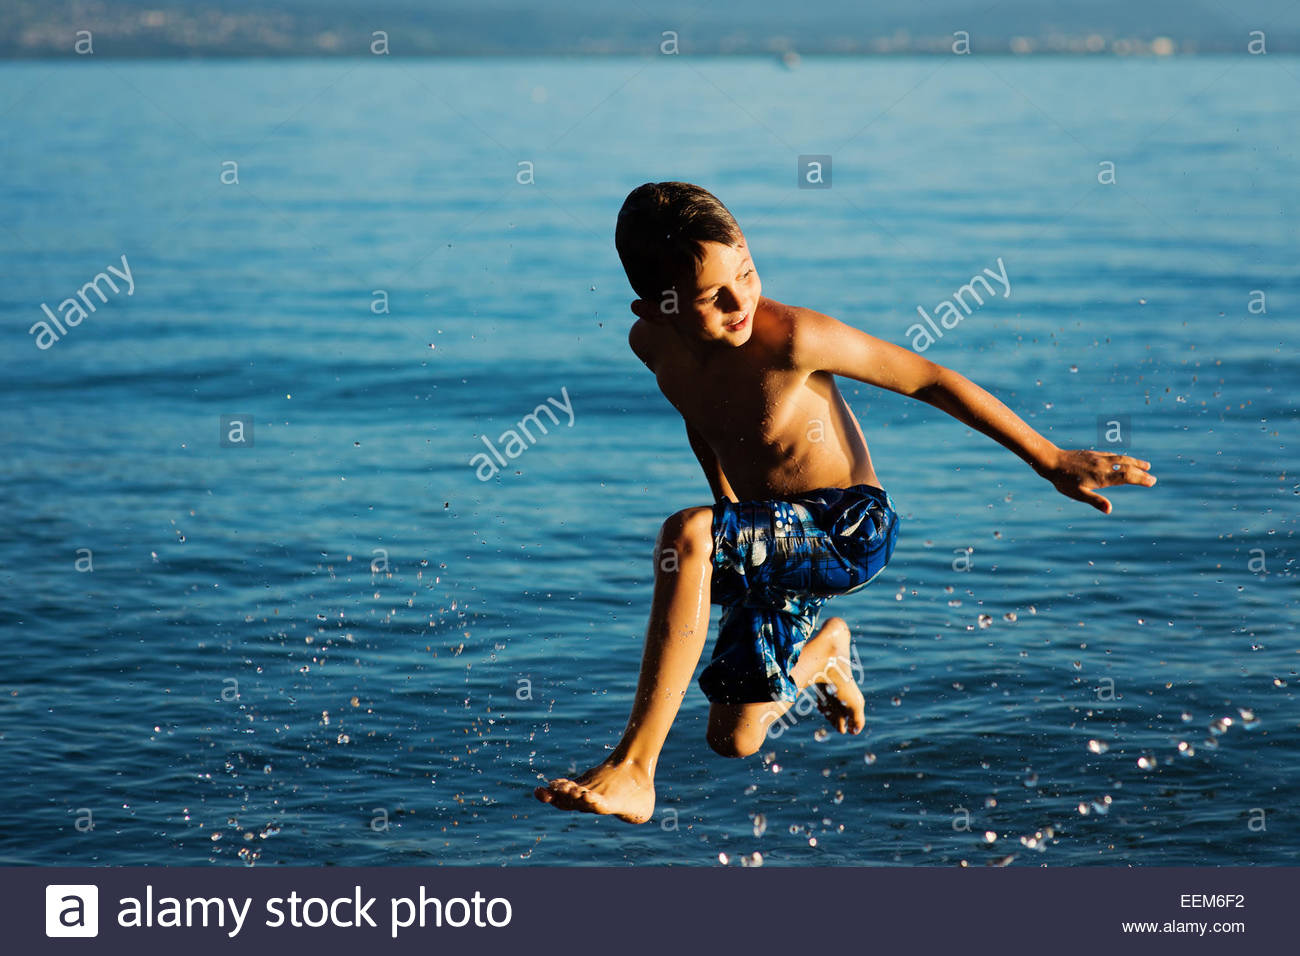 Boy (6-7) jumping into water - Stock Image